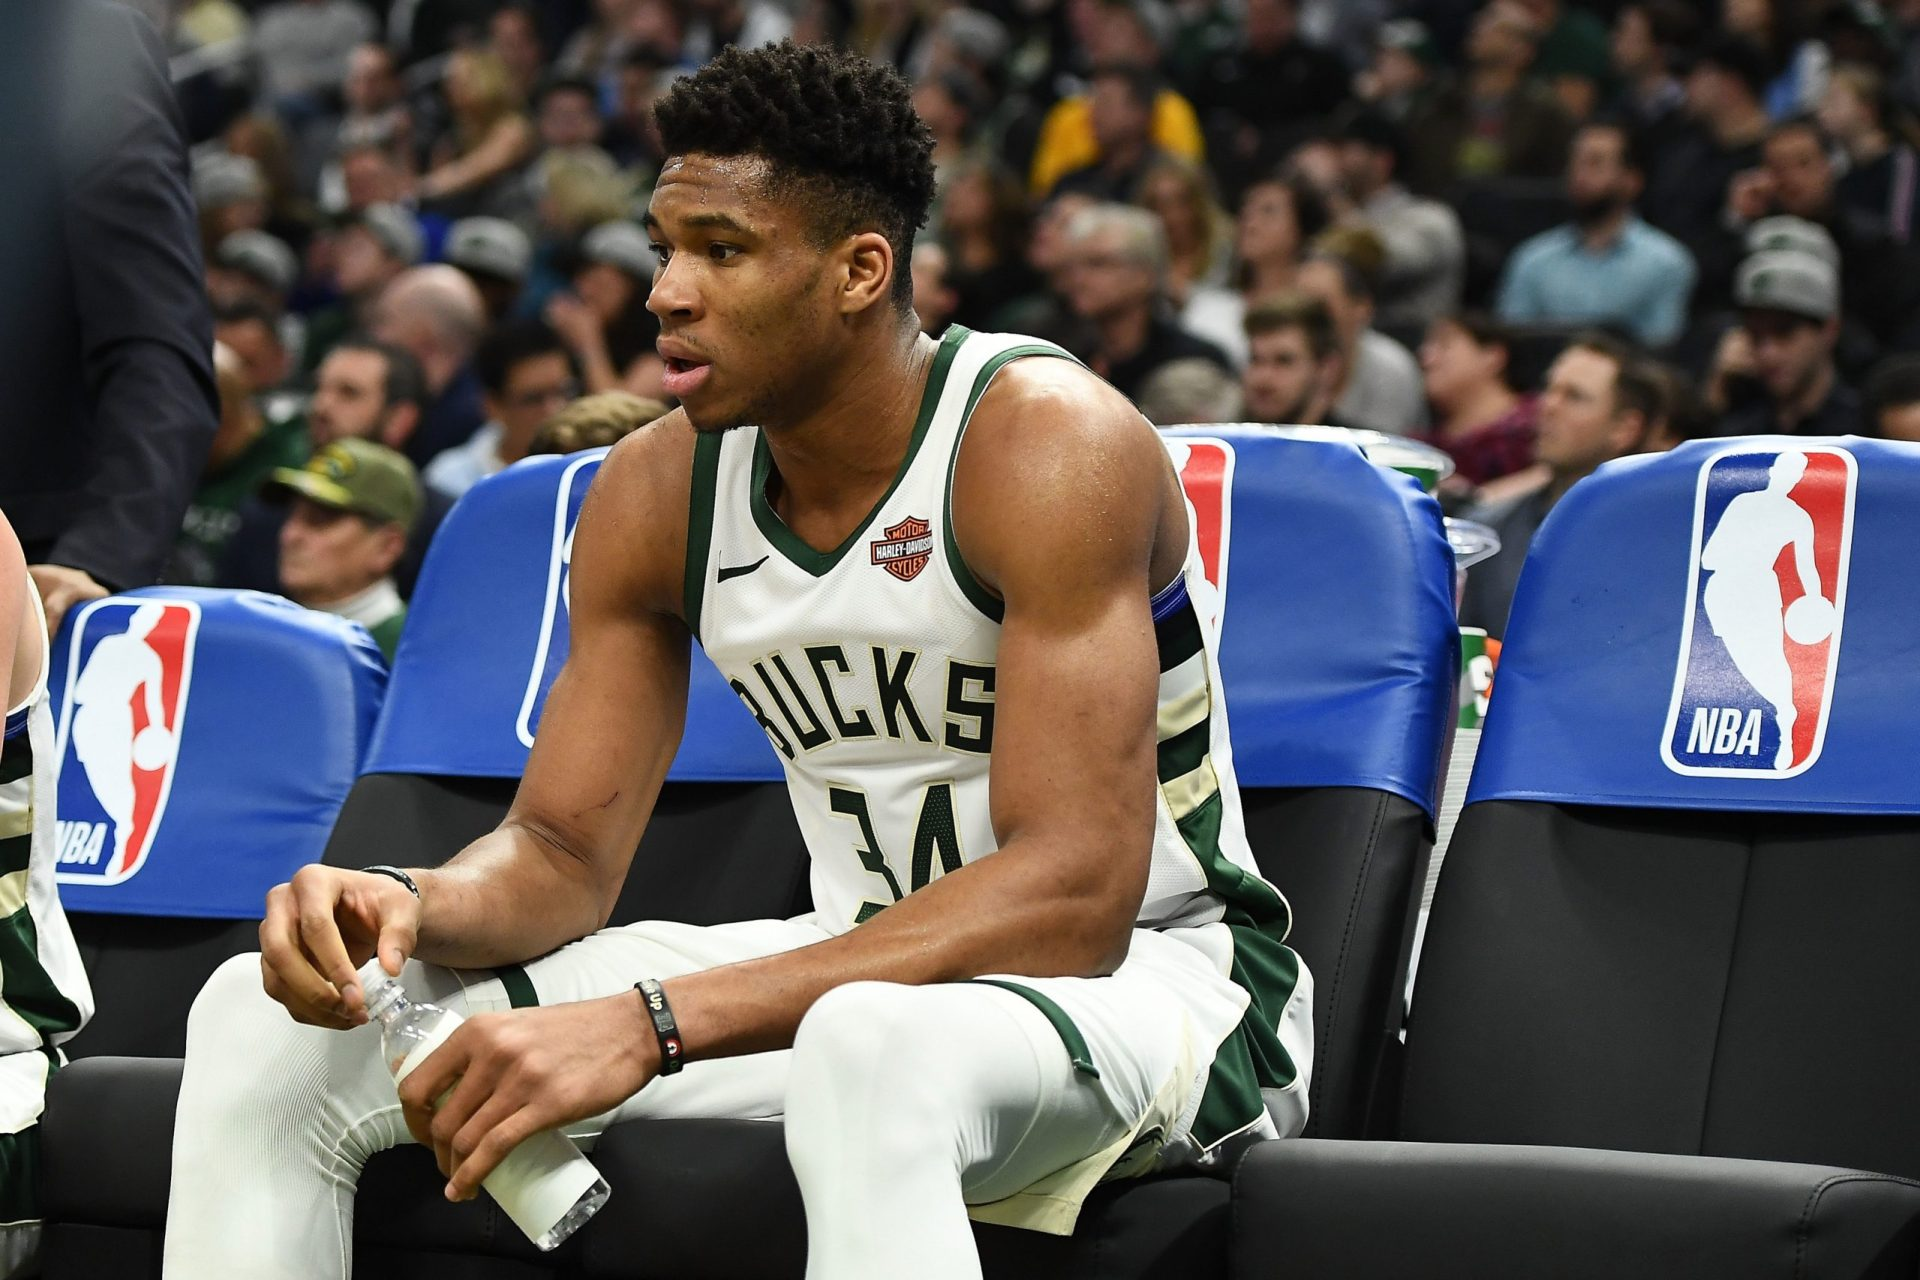 Giannis required doses of IV treatment to counter dehydration following Game 5 - THE SPORTS ROOM